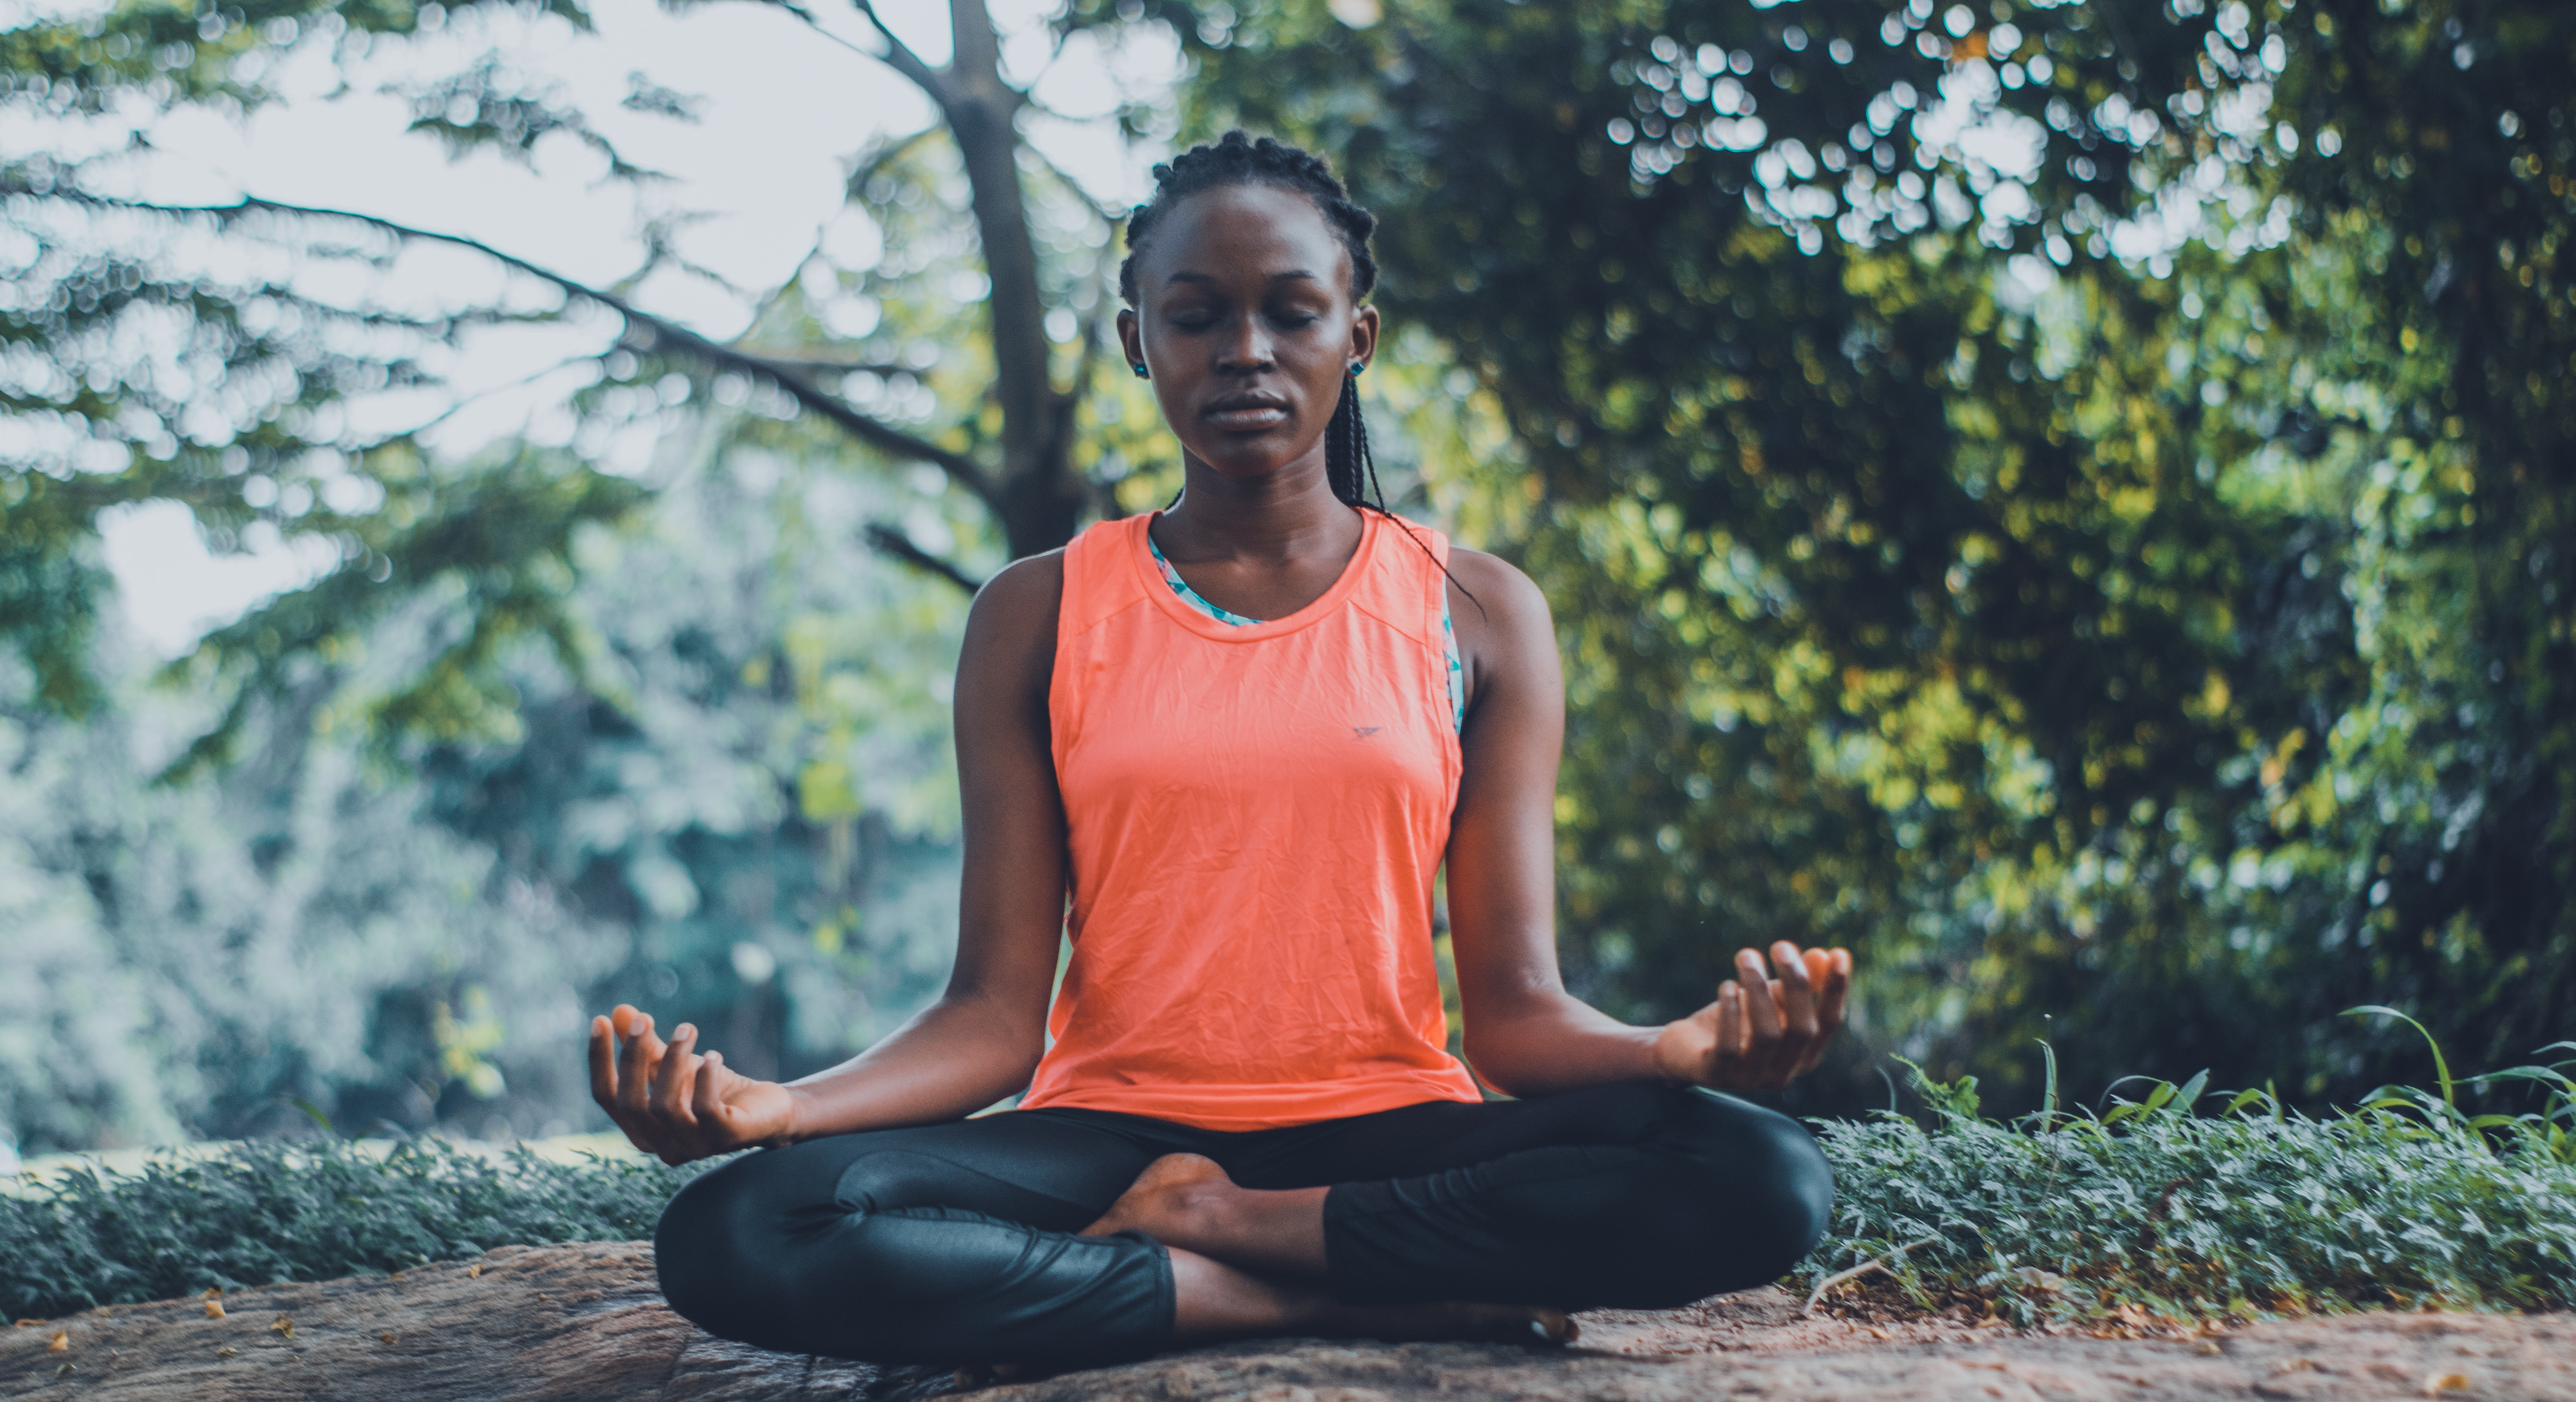 Optimal Health & Finding Your Balance Through Breathing